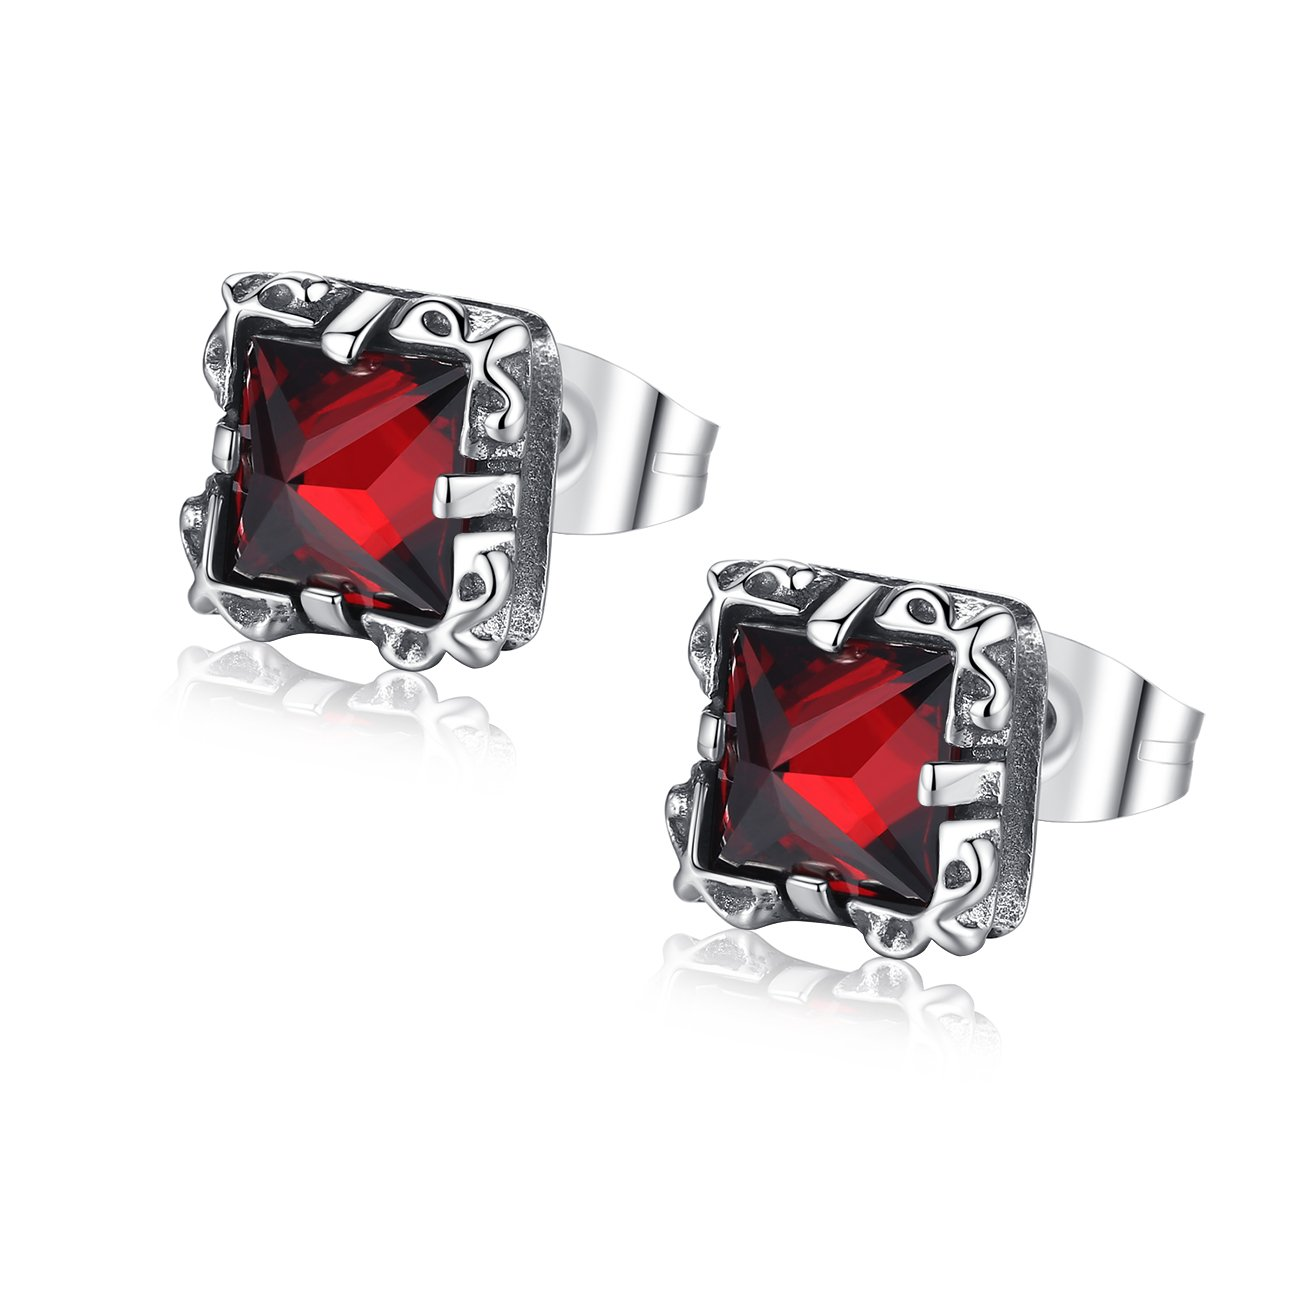 REVEMCN Silver Tone Stainless Steel Vintage Square Pyramid Cut Cubic Zirconia Stud Earrings for Men Women (Red)